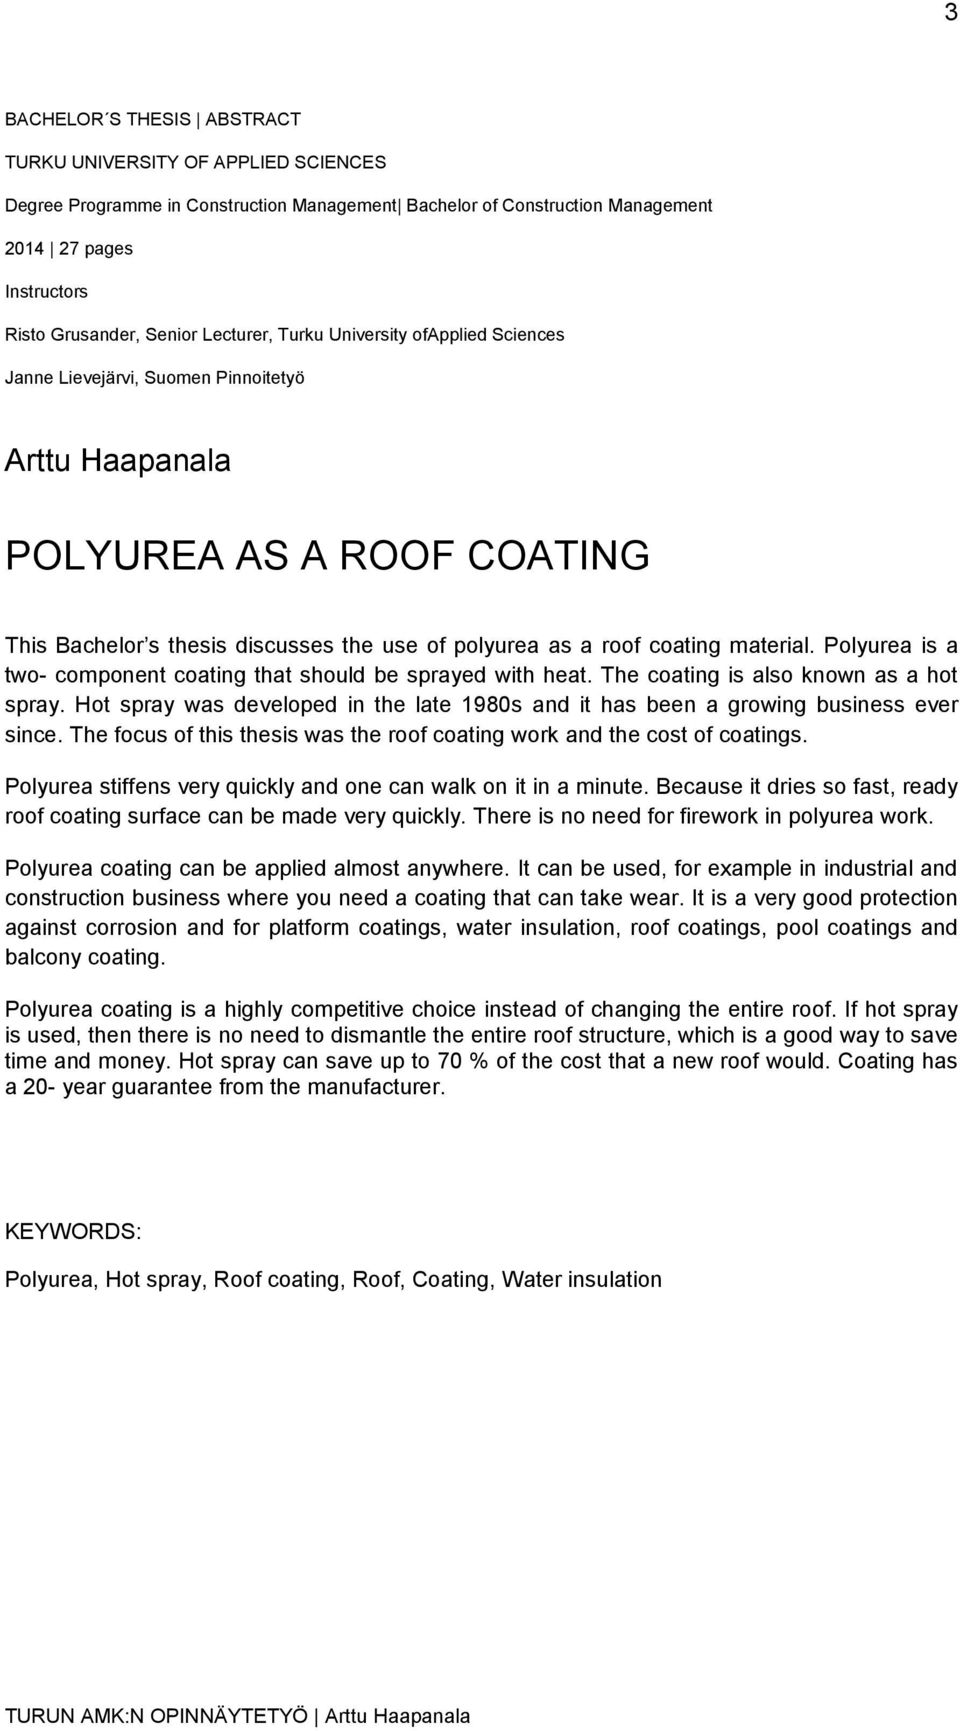 material. Polyurea is a two- component coating that should be sprayed with heat. The coating is also known as a hot spray.